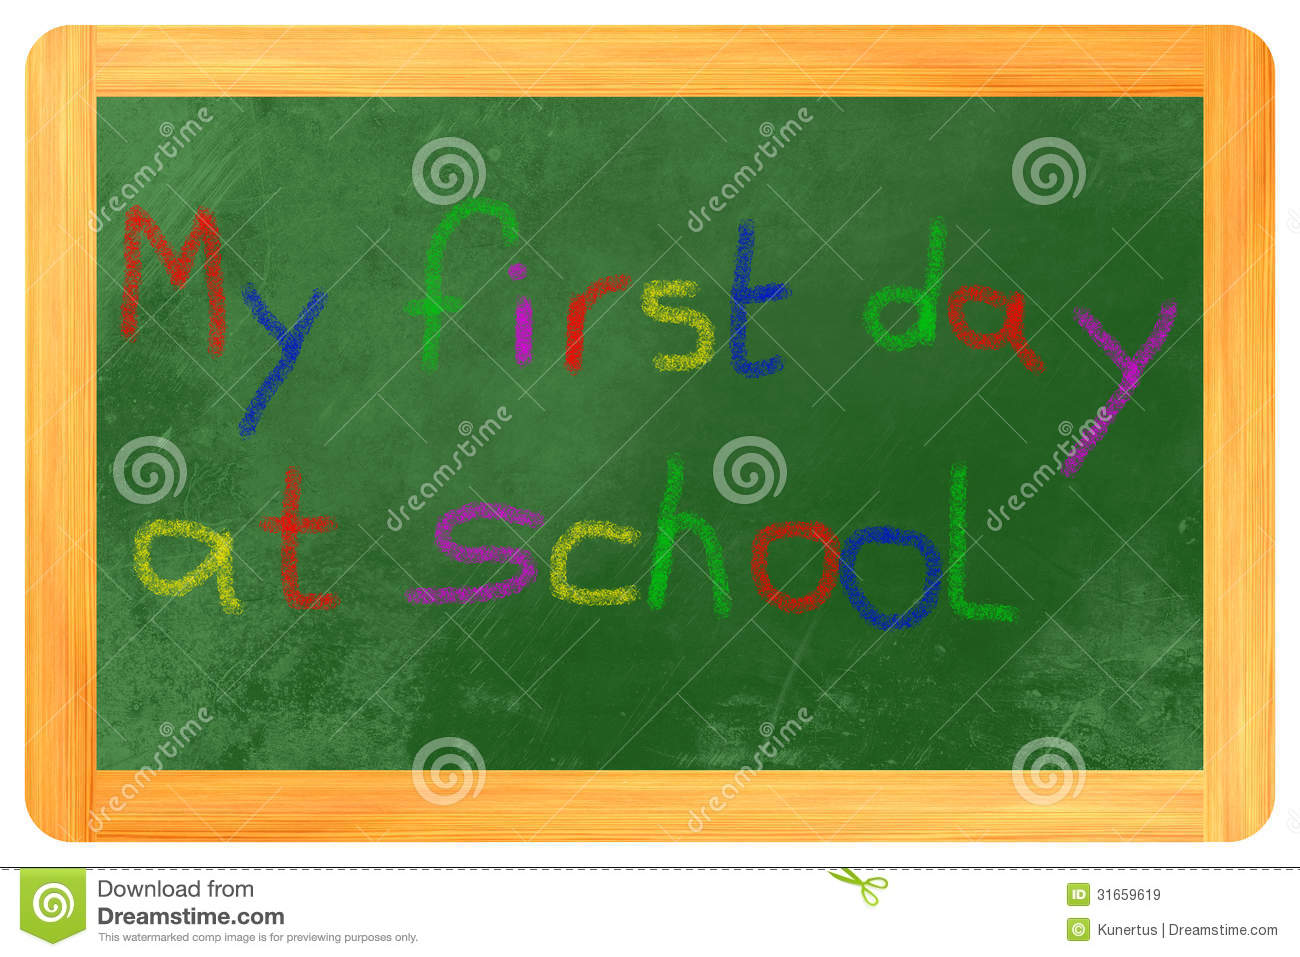 my 1st day at school